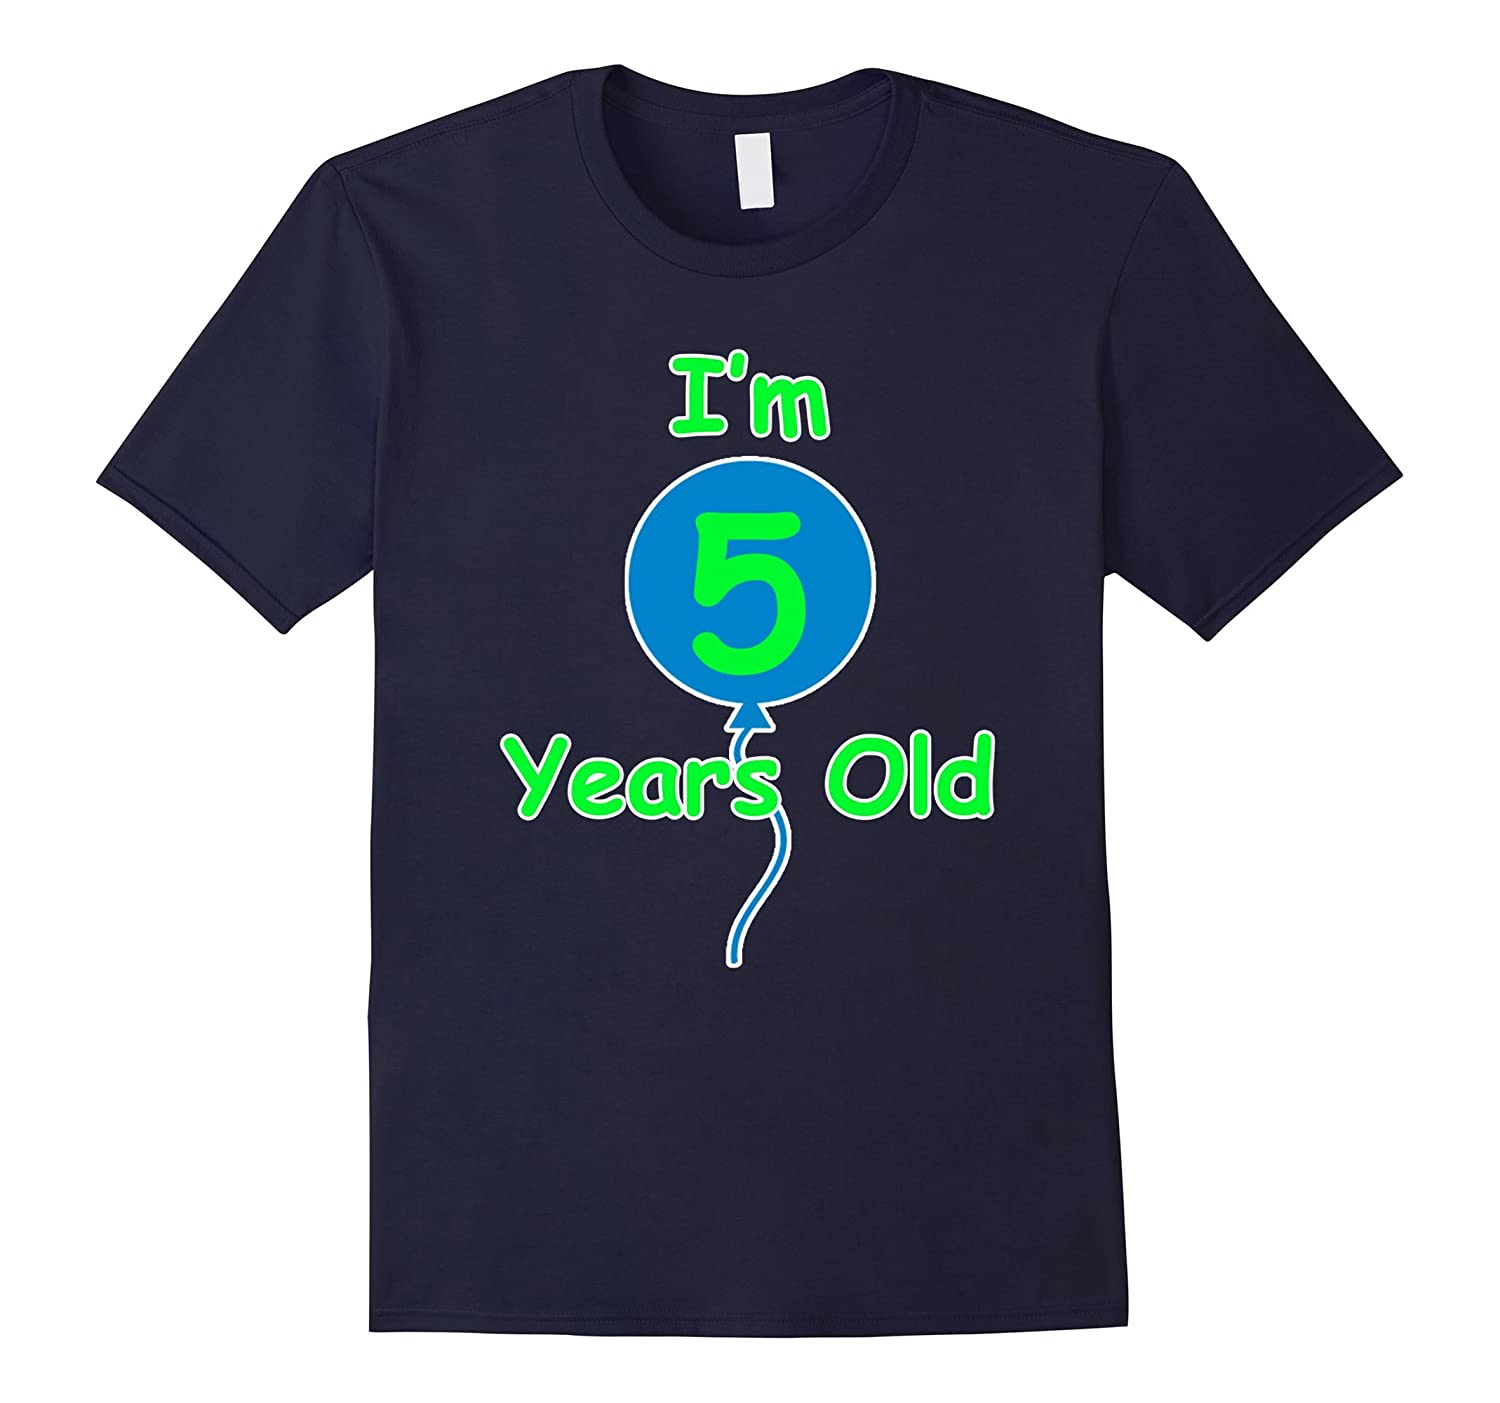 5th Birthday Gift Im 5 Years Old T-Shirt Party Boy Girl-PL